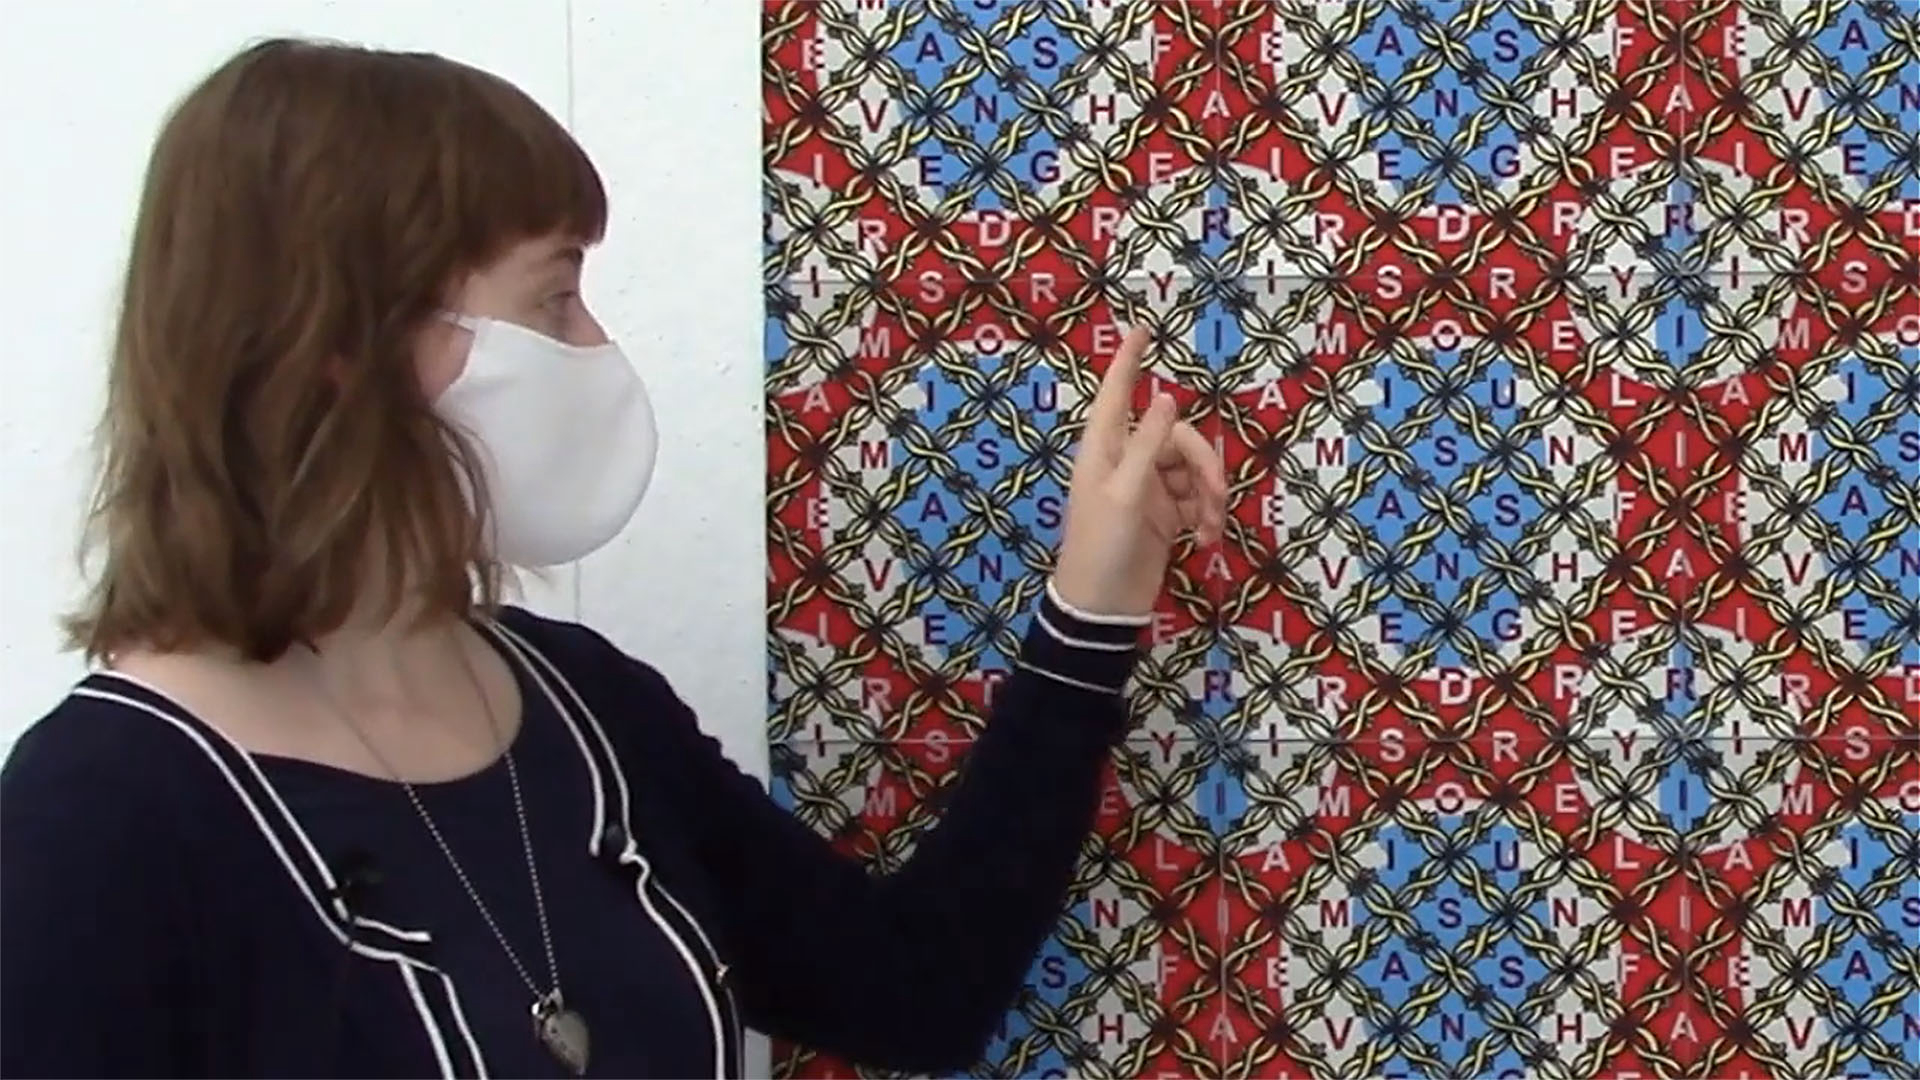 Allison Howard, The meaning behind her Wallpaper project